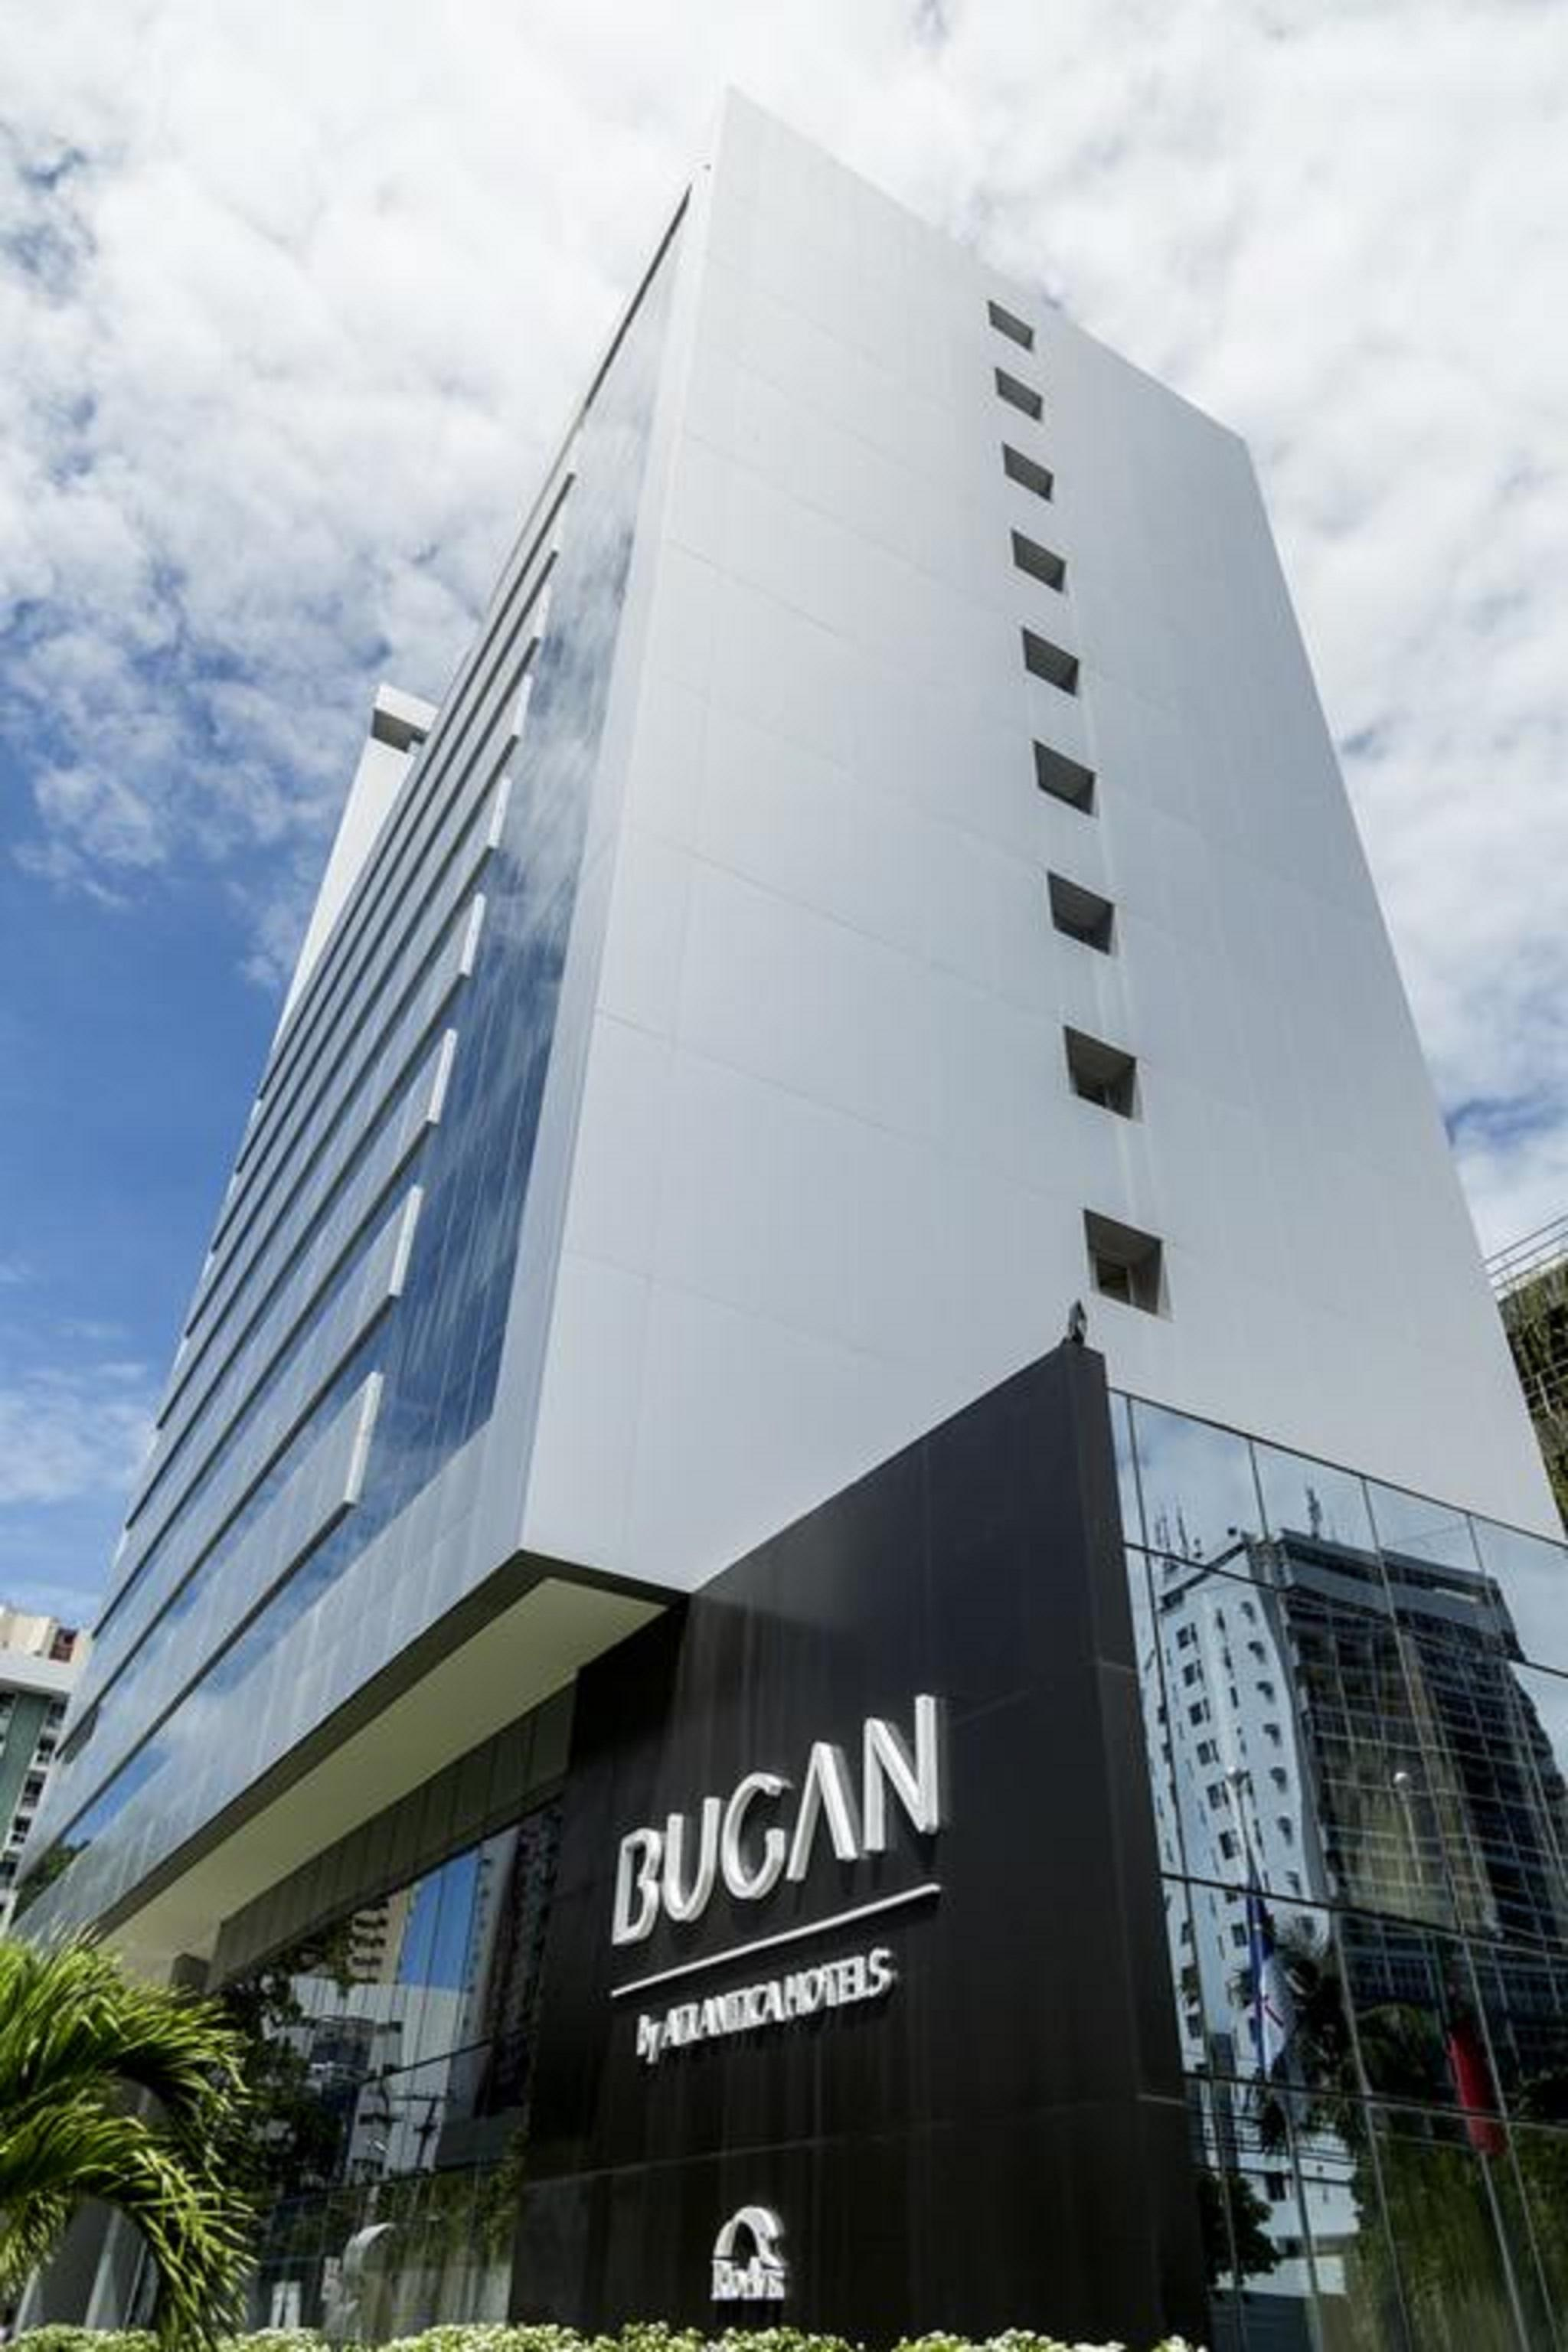 Bugan Hotel by Atlantica Recife